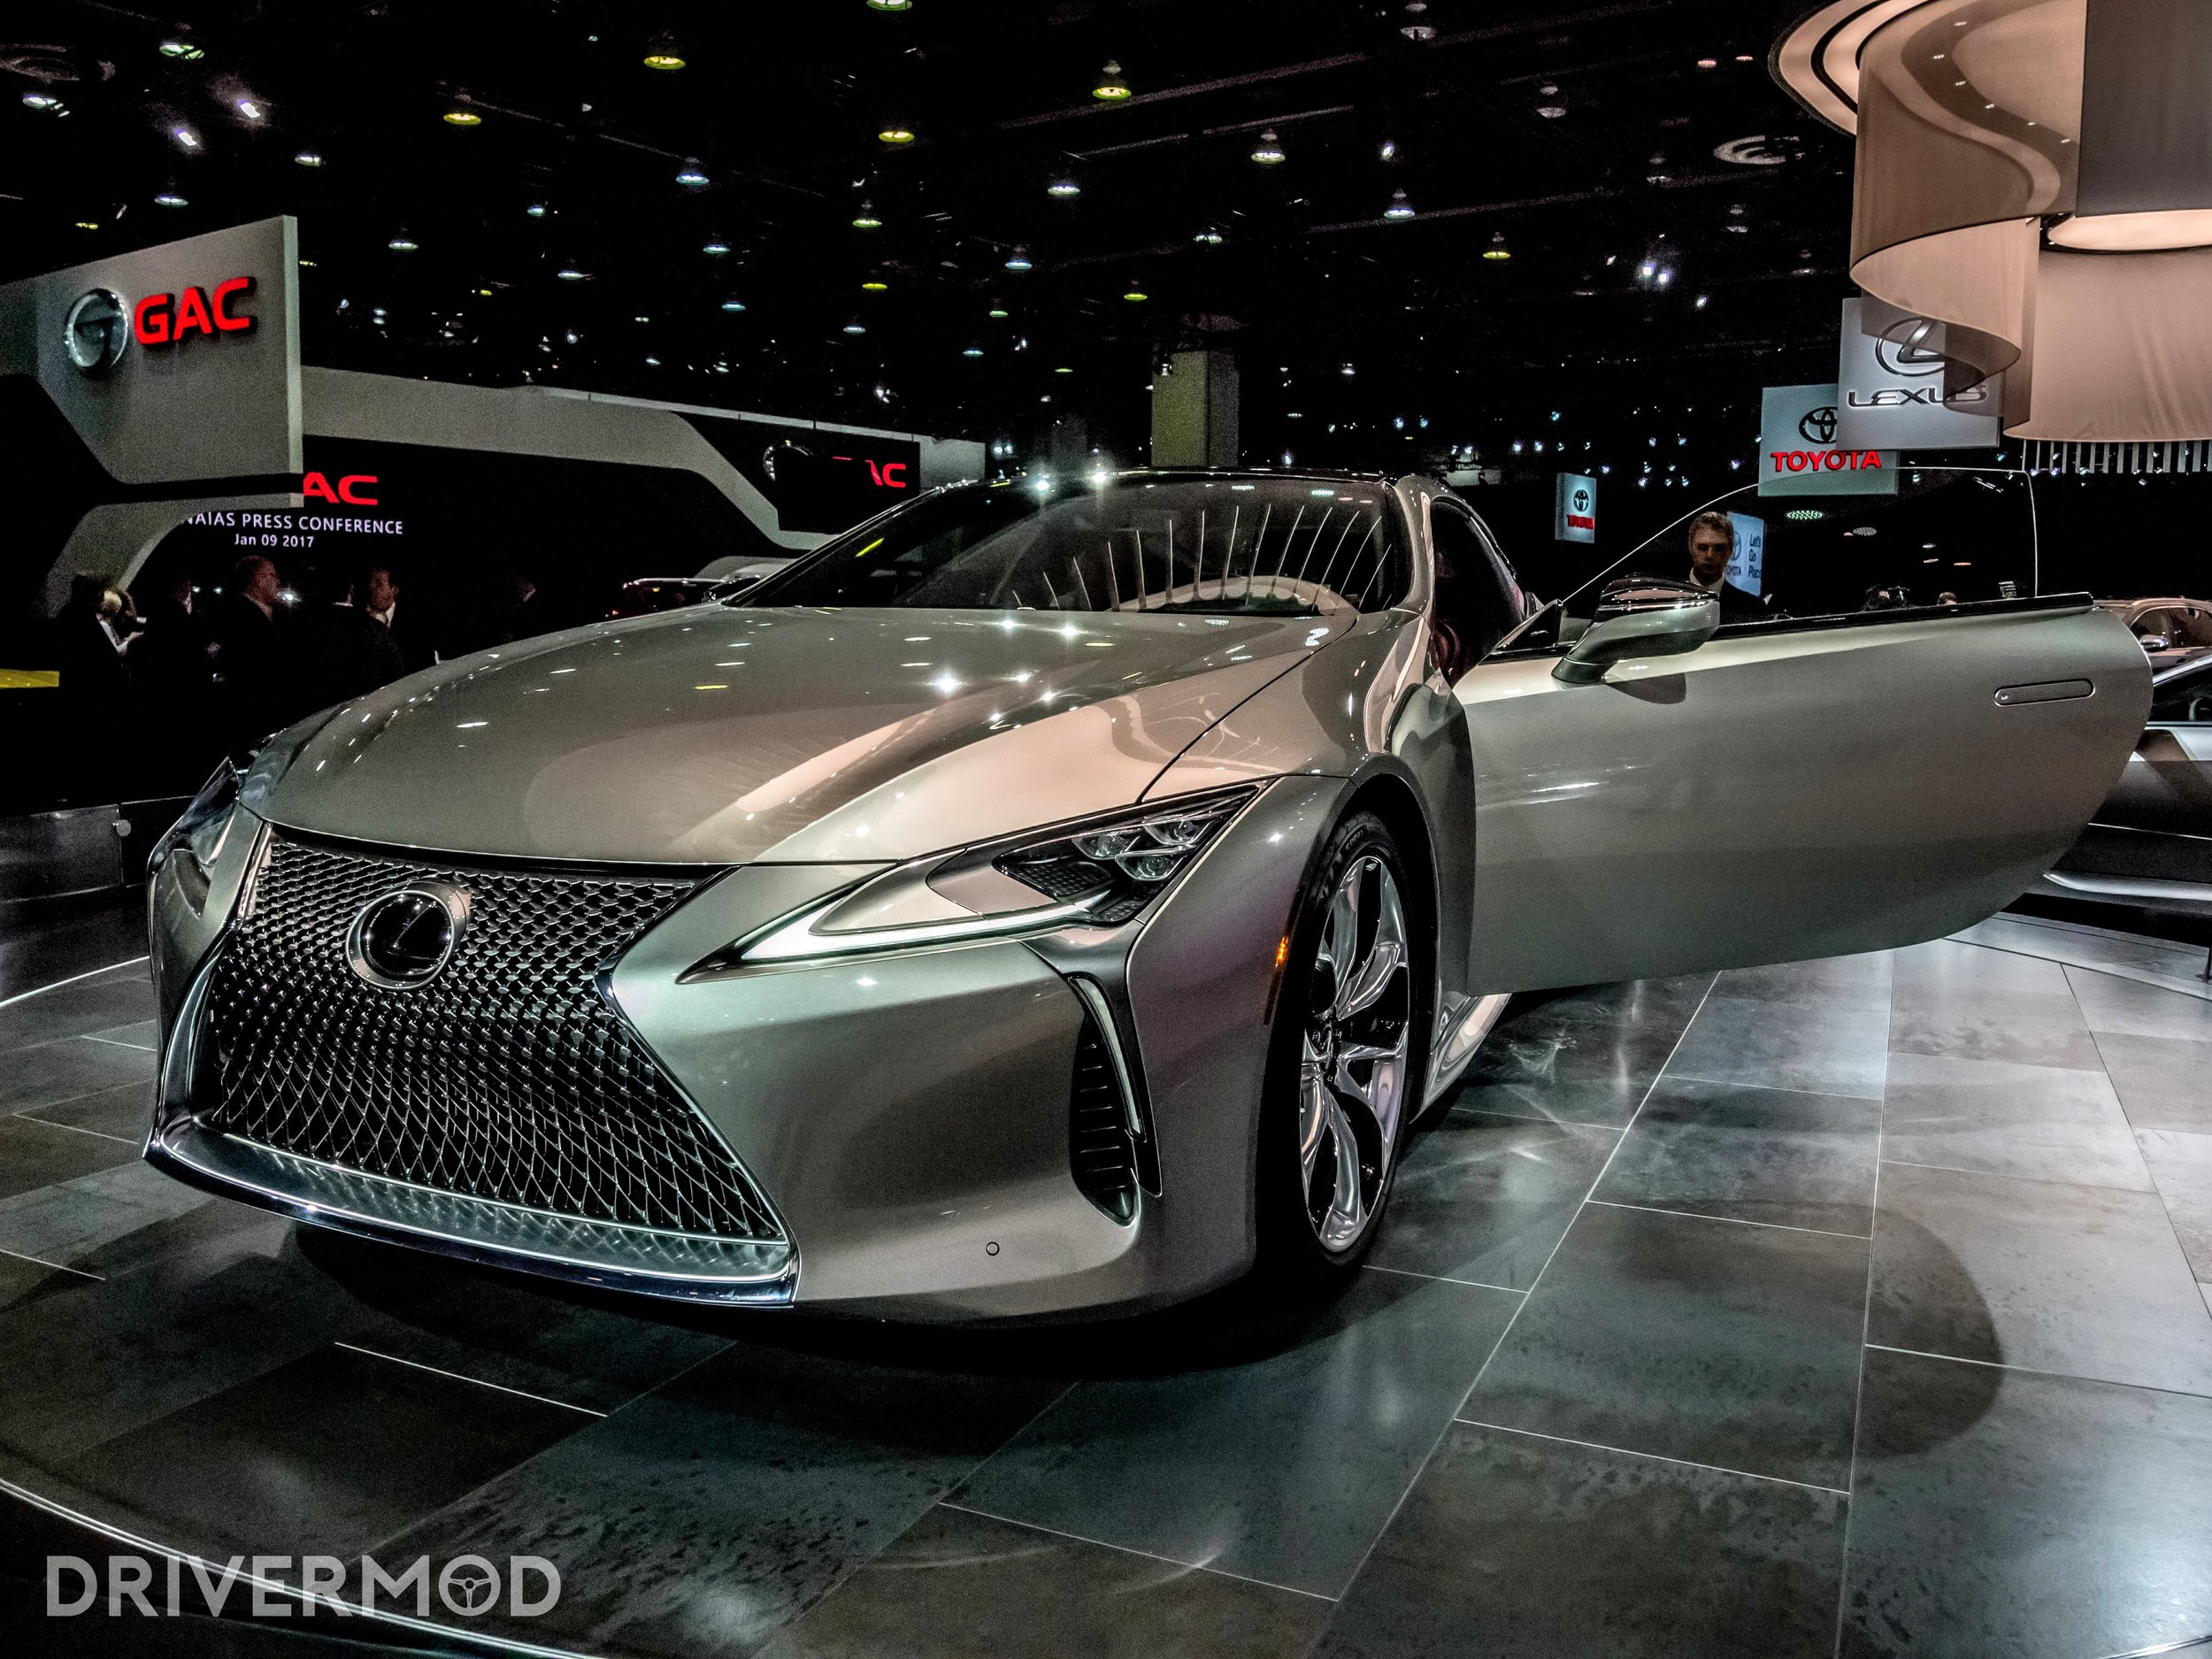 The 2018 Lexus LC500 also made an appearance, and it's stunning.